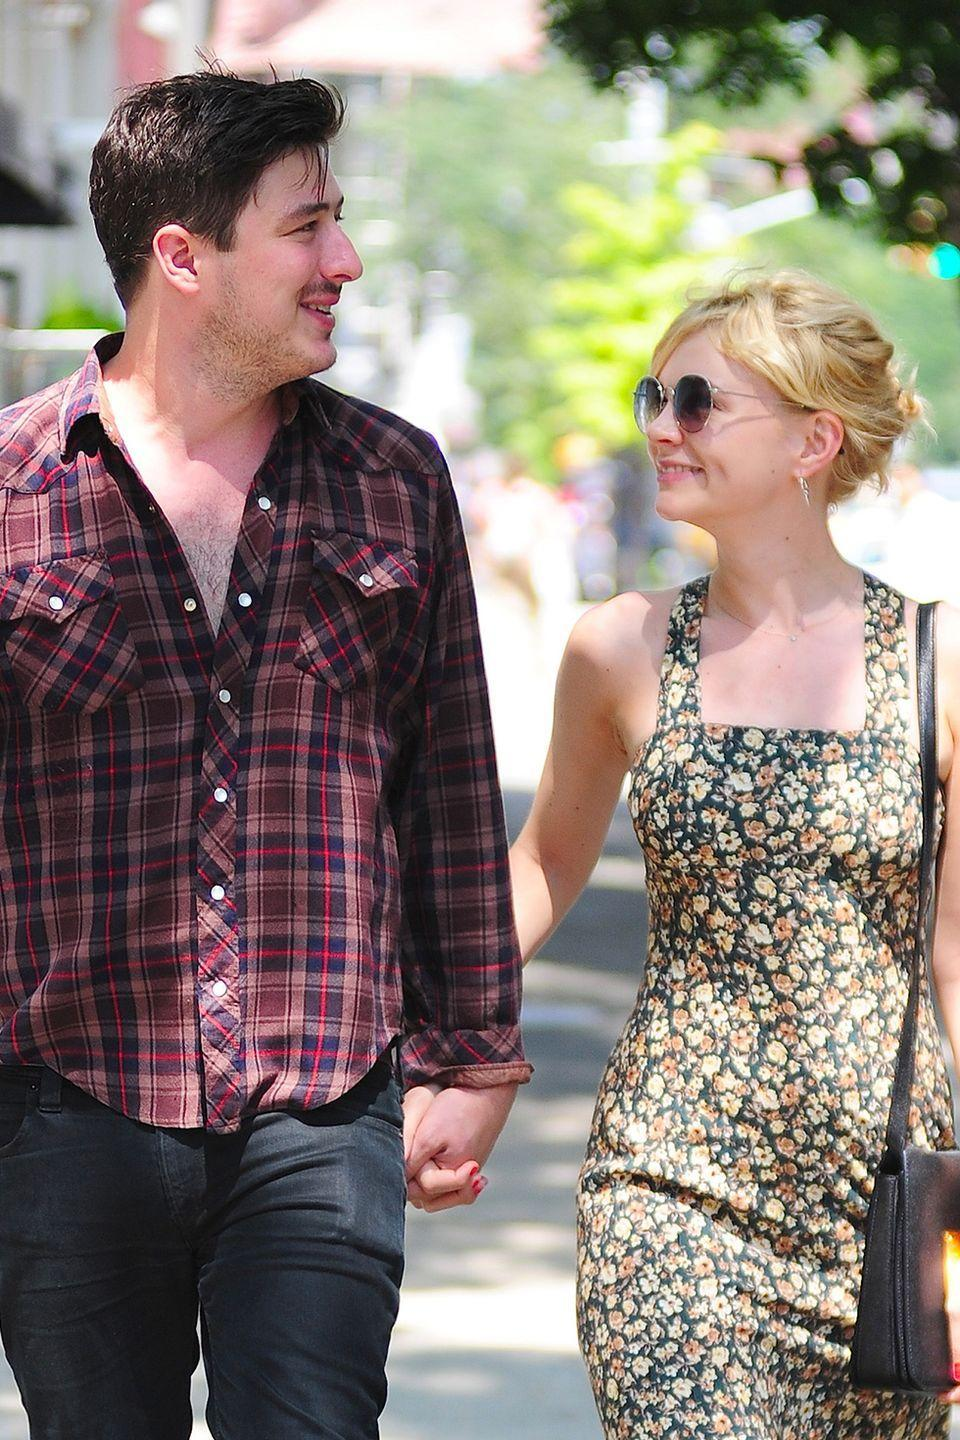 "<p>The actress moved on from Shia LaBeouf to the Mumford and Sons frontman, getting engaged after about six months of dating, per <a class=""link rapid-noclick-resp"" href=""https://www.hollywoodreporter.com/news/carey-mulligan-marcus-mumford-engaged-219460"" rel=""nofollow noopener"" target=""_blank"" data-ylk=""slk:The Hollywood Reporter""><em>The Hollywood Reporter</em></a>. They were married in 2012, have two kids and are still together.</p>"